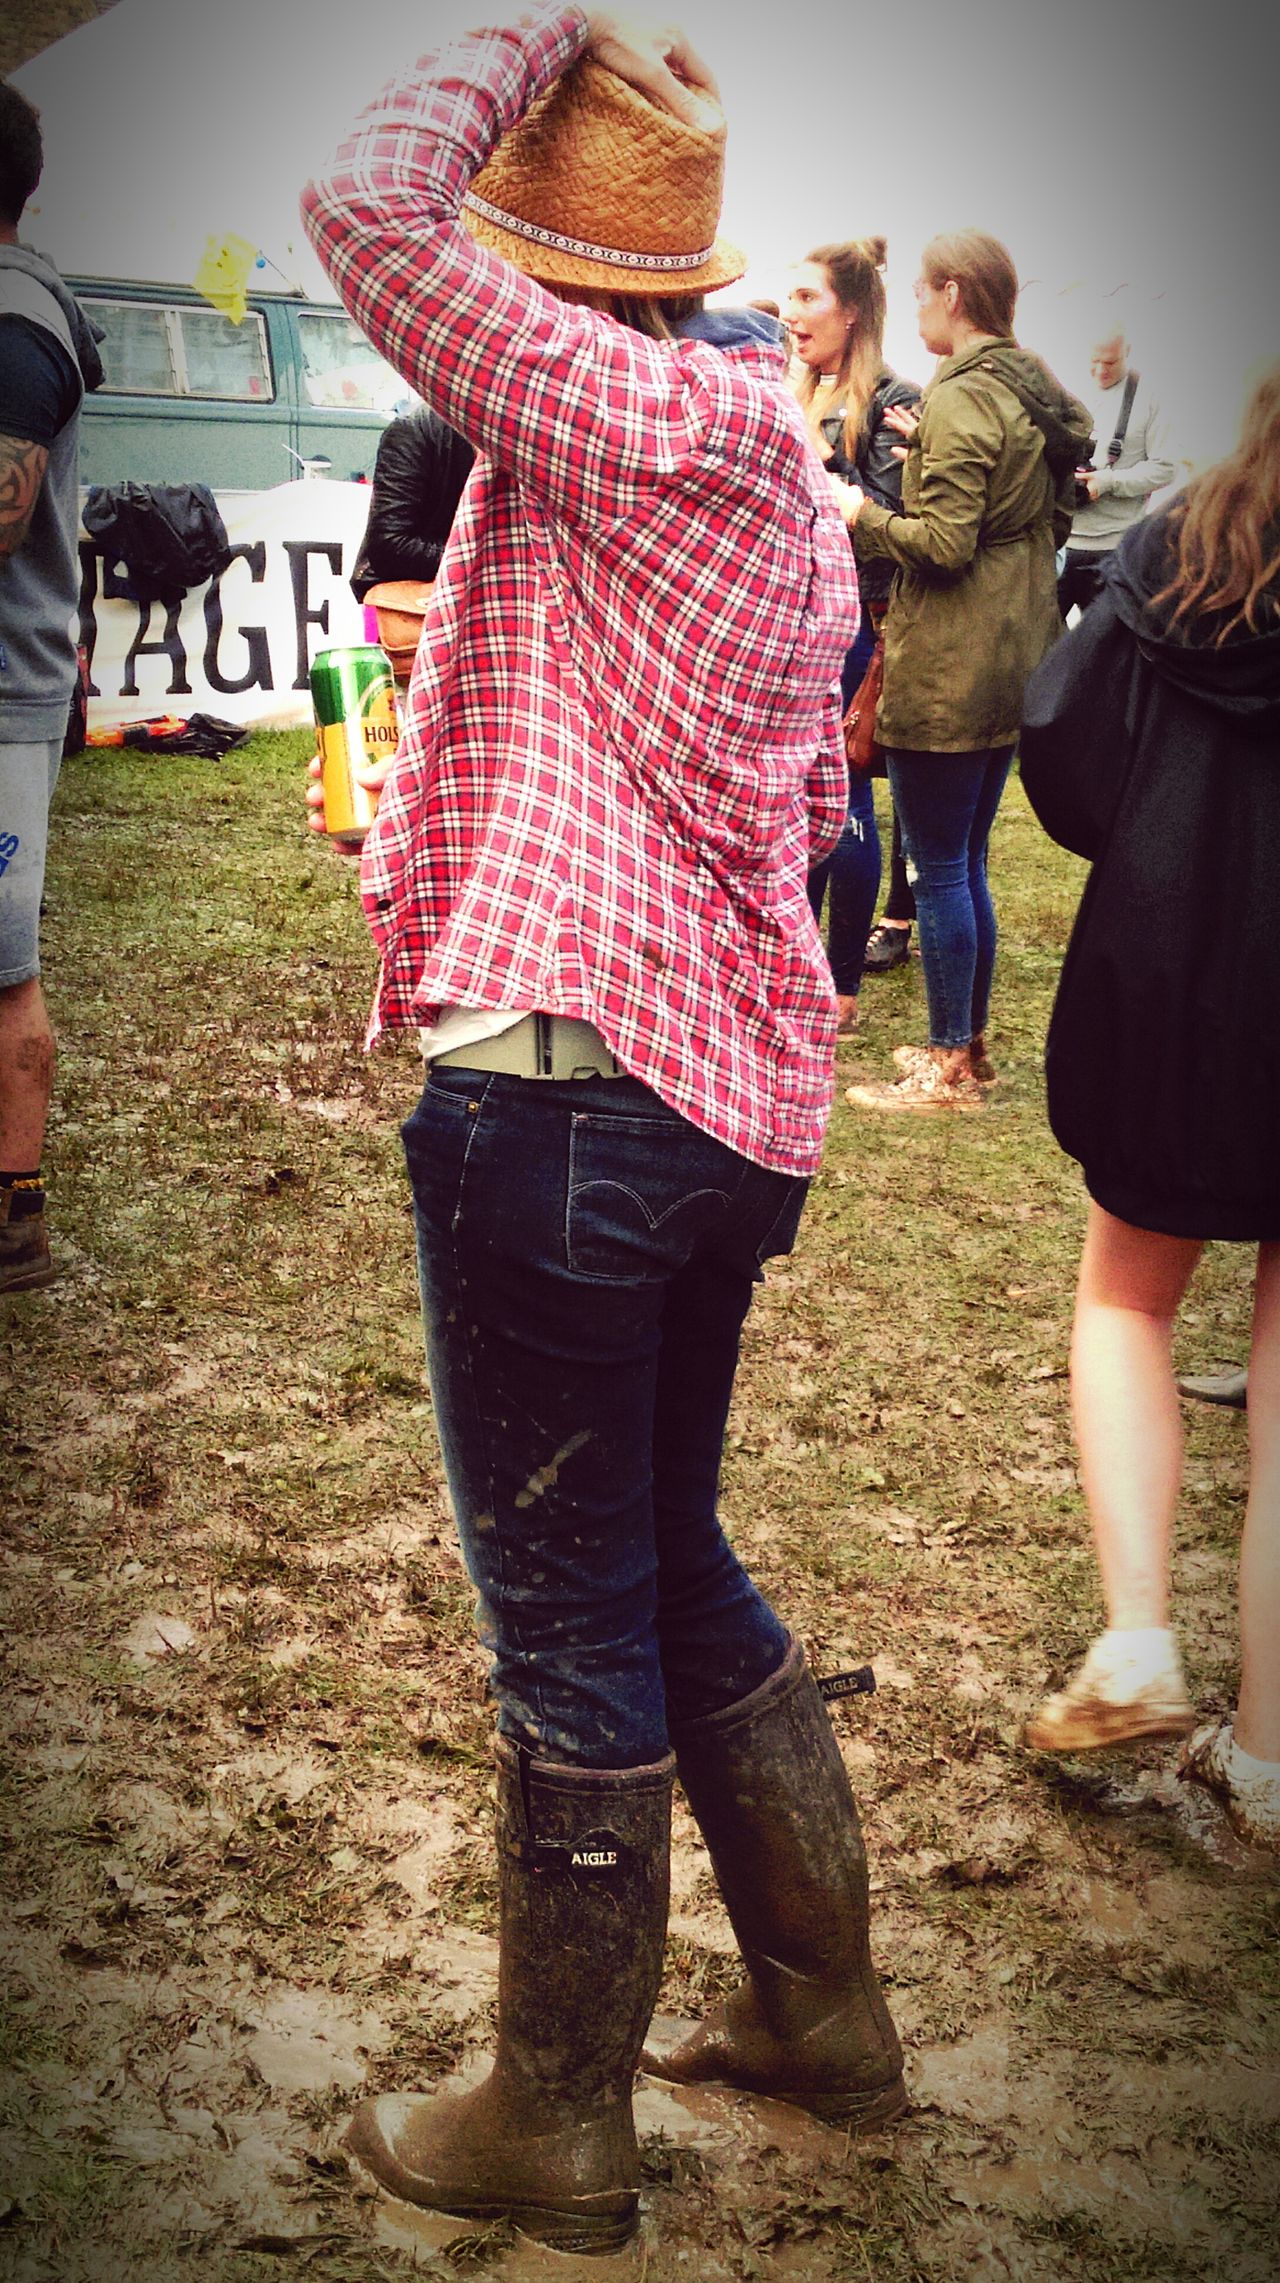 Festival People Music Festival Festival People Festival Season Festival Photography People Watching Wet Weather Muddy Wellington Boots Boots Wellies  Having Fun Enjoying A Drink  Phone Photography HTC One